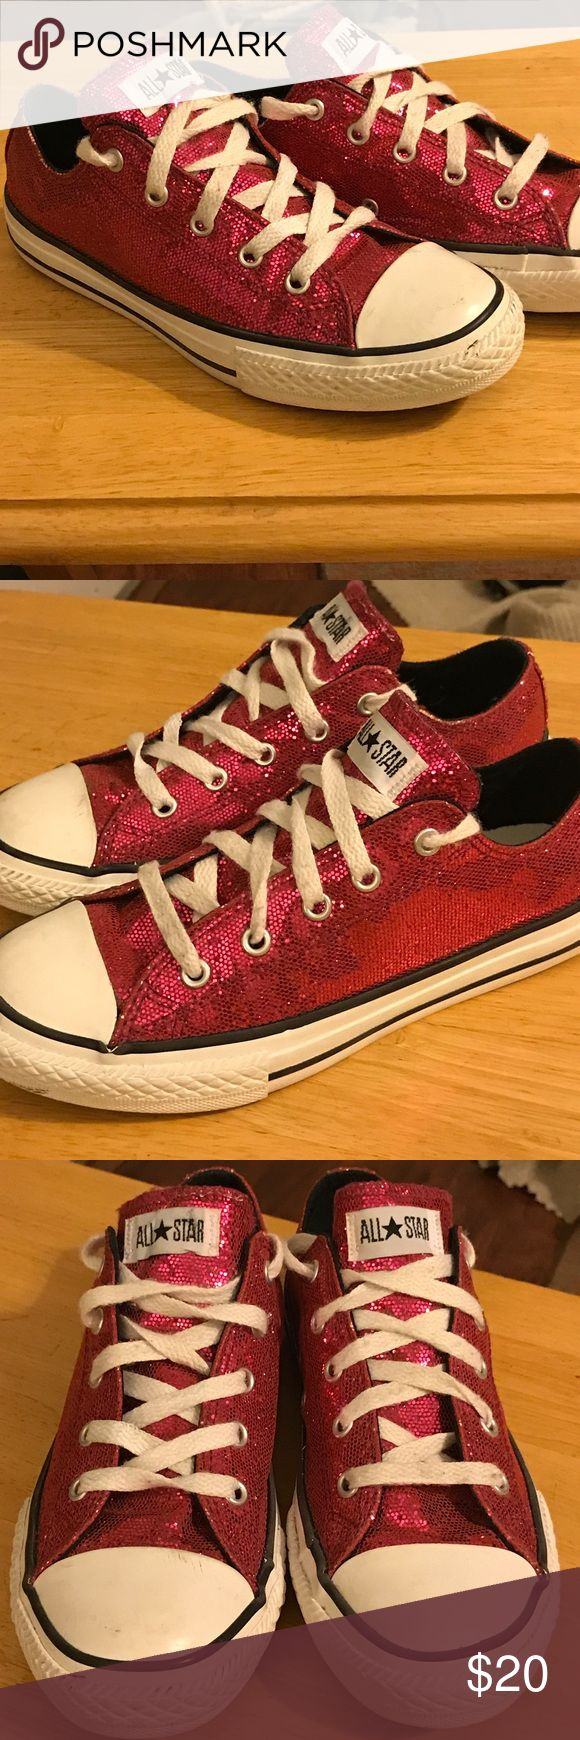 Converse All Star lows in size 3Y 5W Classic Converse All Star lows in size 3 youth and size 5 woman's please see the sizing chart in the photos so you can see the size variance per male/youth to woman's size. These were worn 2 times by my niece and there in excellent condition the hot pink glitter finish just pops and makes these already classic sneakers even cooler! Converse Shoes Sneakers